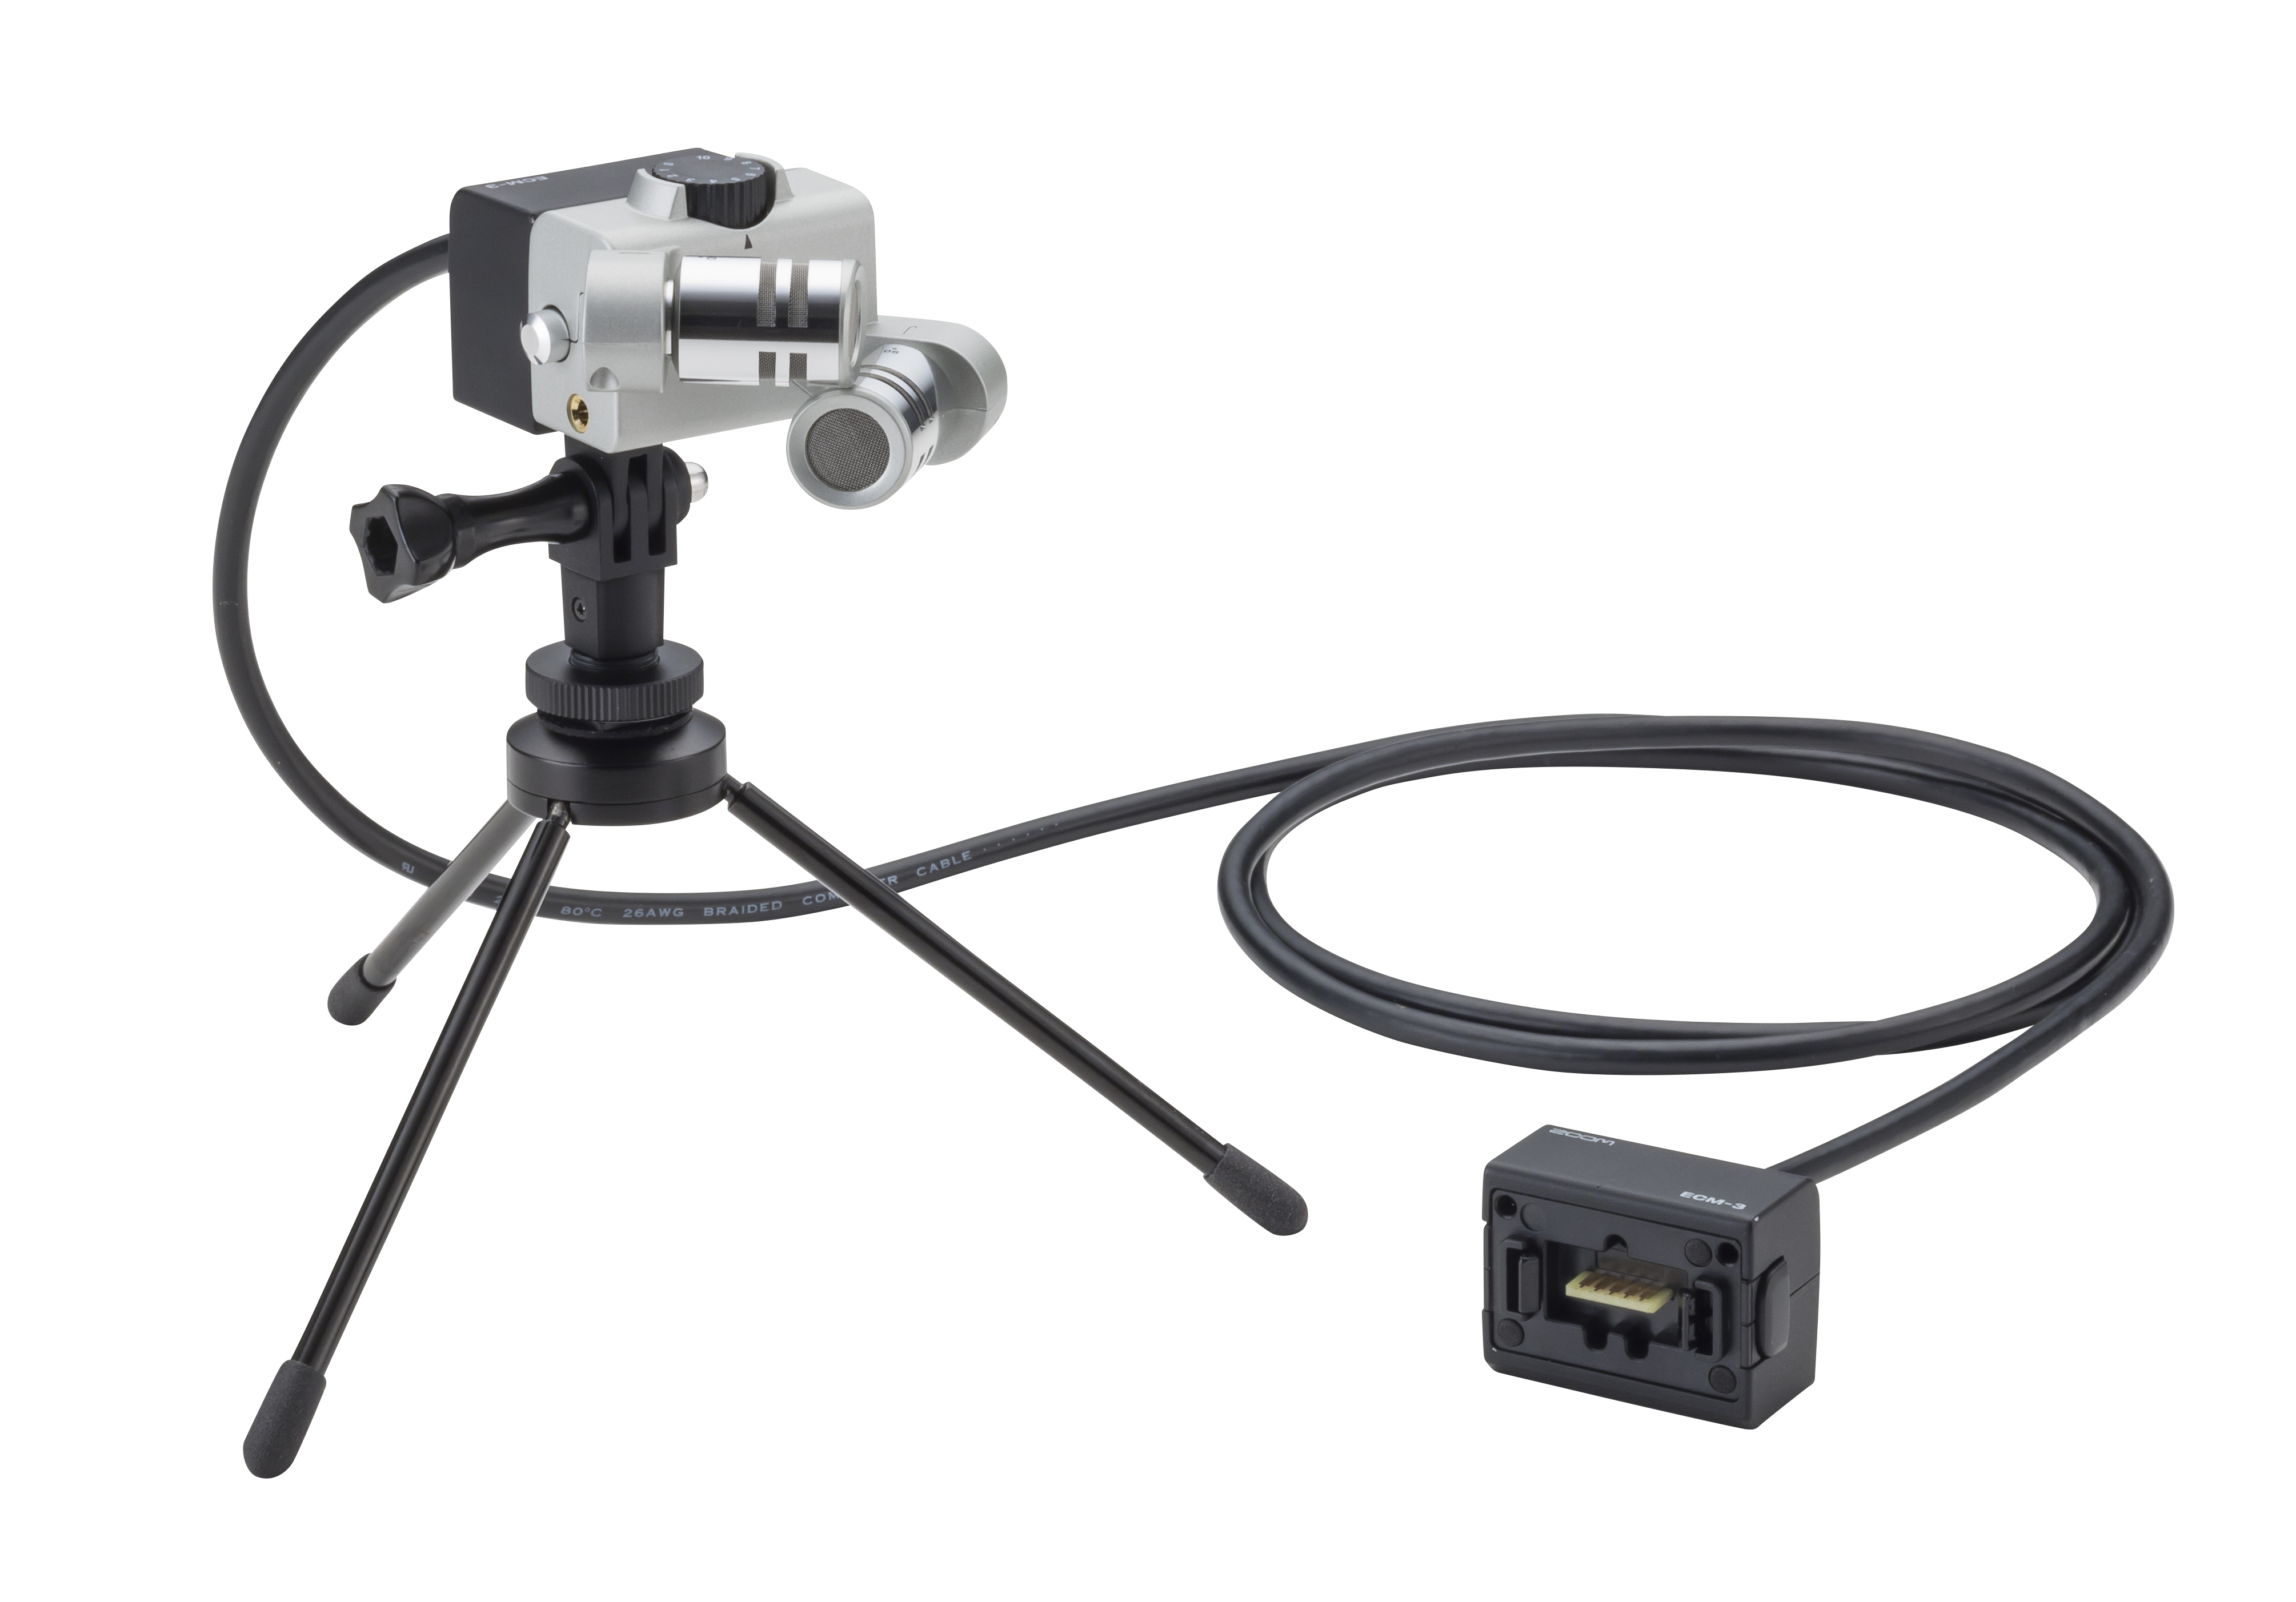 Ecm 3 Extension Cable For Mic Capsule Zoom